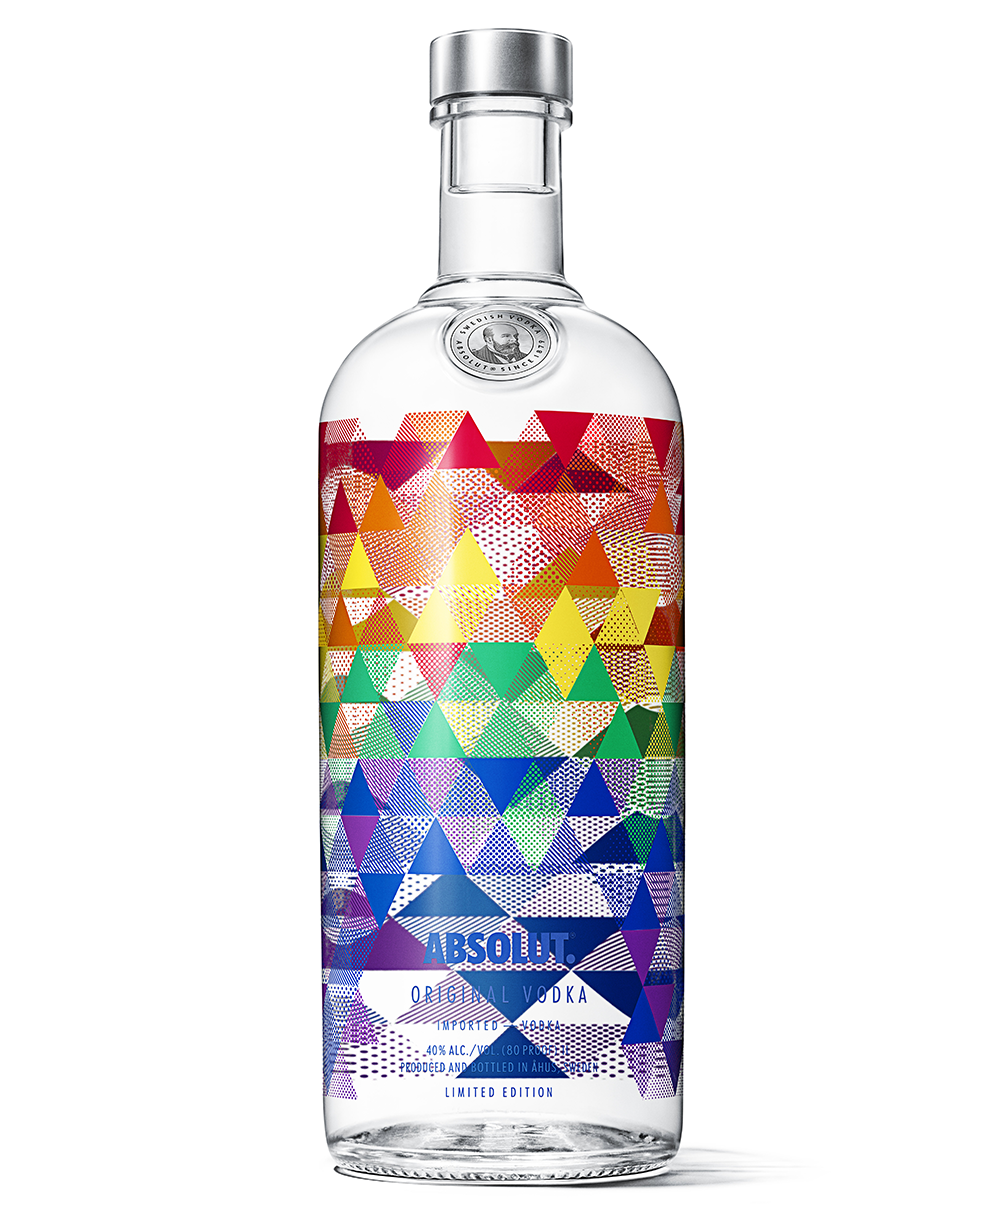 Absolut release the Mix bottle inspired by the 6 colours of the LGBT Pride flag